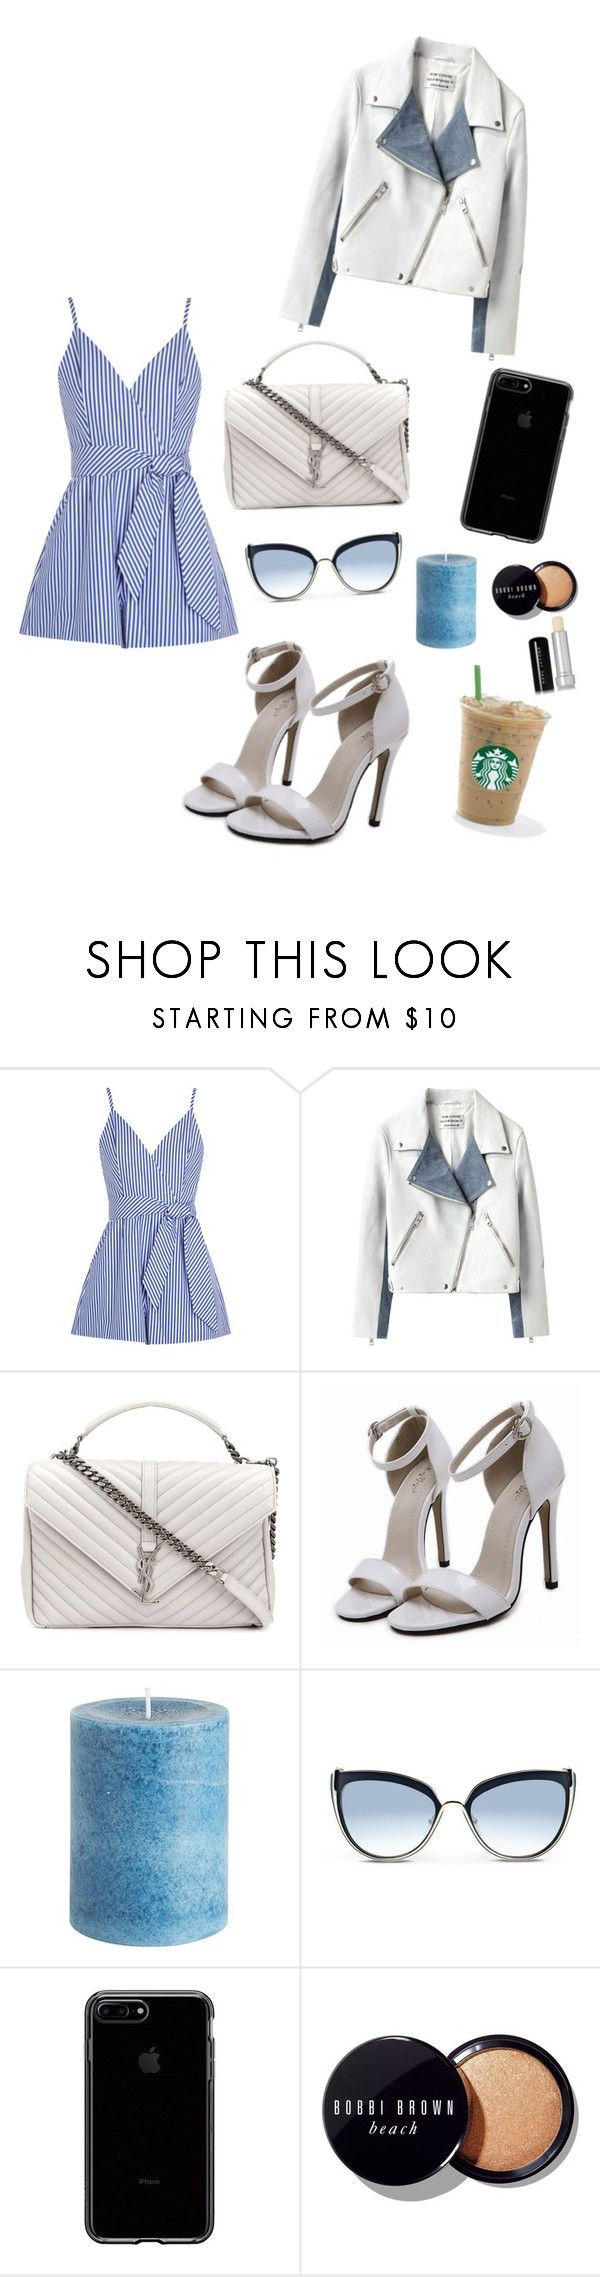 """""""1-60"""" by cbbh on Polyvore featuring moda, Finders Keepers, Acne Studios, Yves Saint Laurent, Pier 1 Imports, Karl Lagerfeld, Bobbi Brown Cosmetics e Marc Jacobs"""